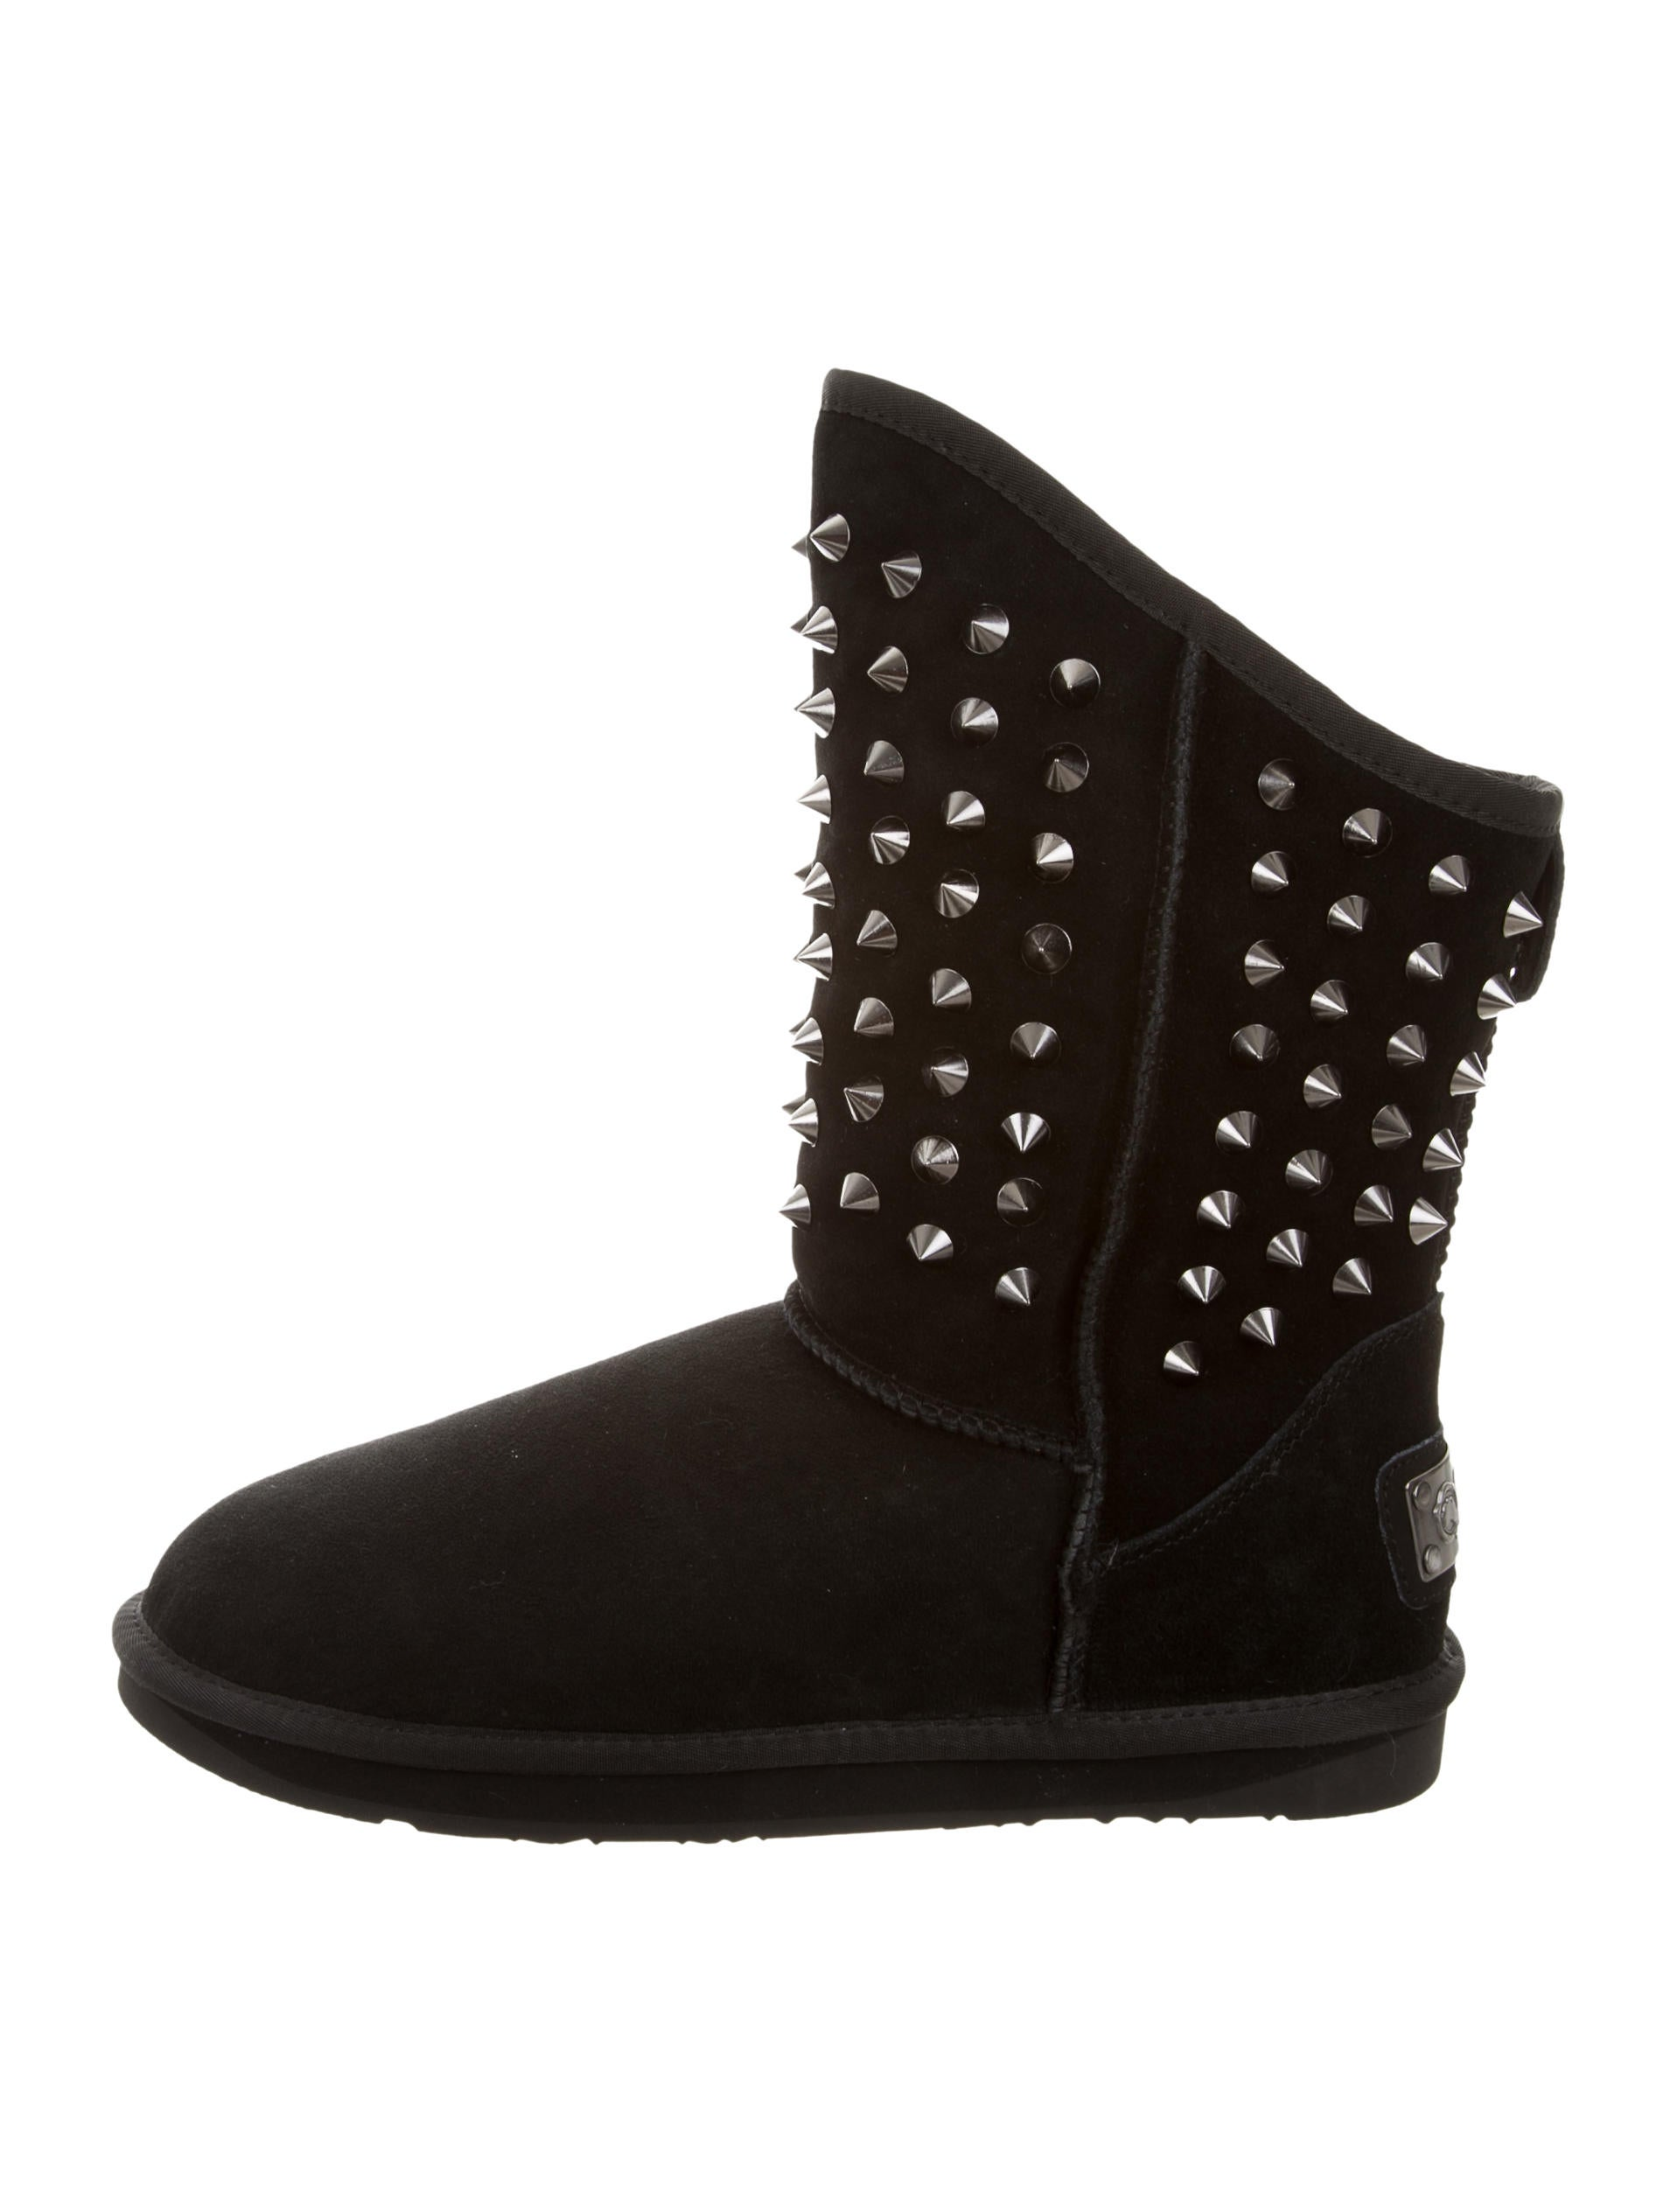 australia luxe collective suede studded ankle boots